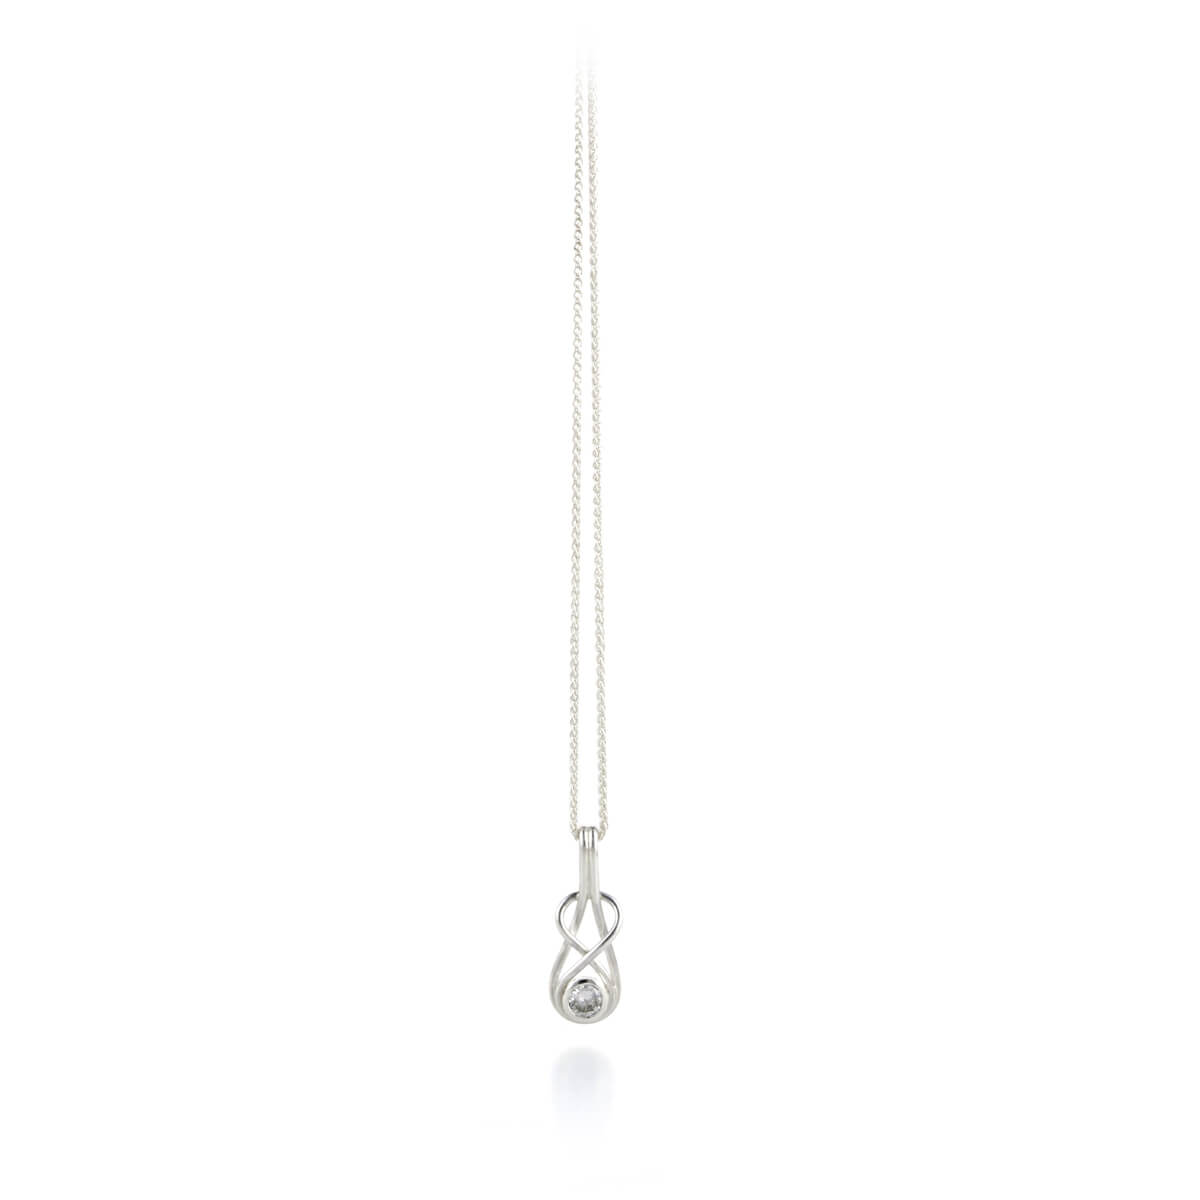 silver-diamond-knot-pendant-2-copy